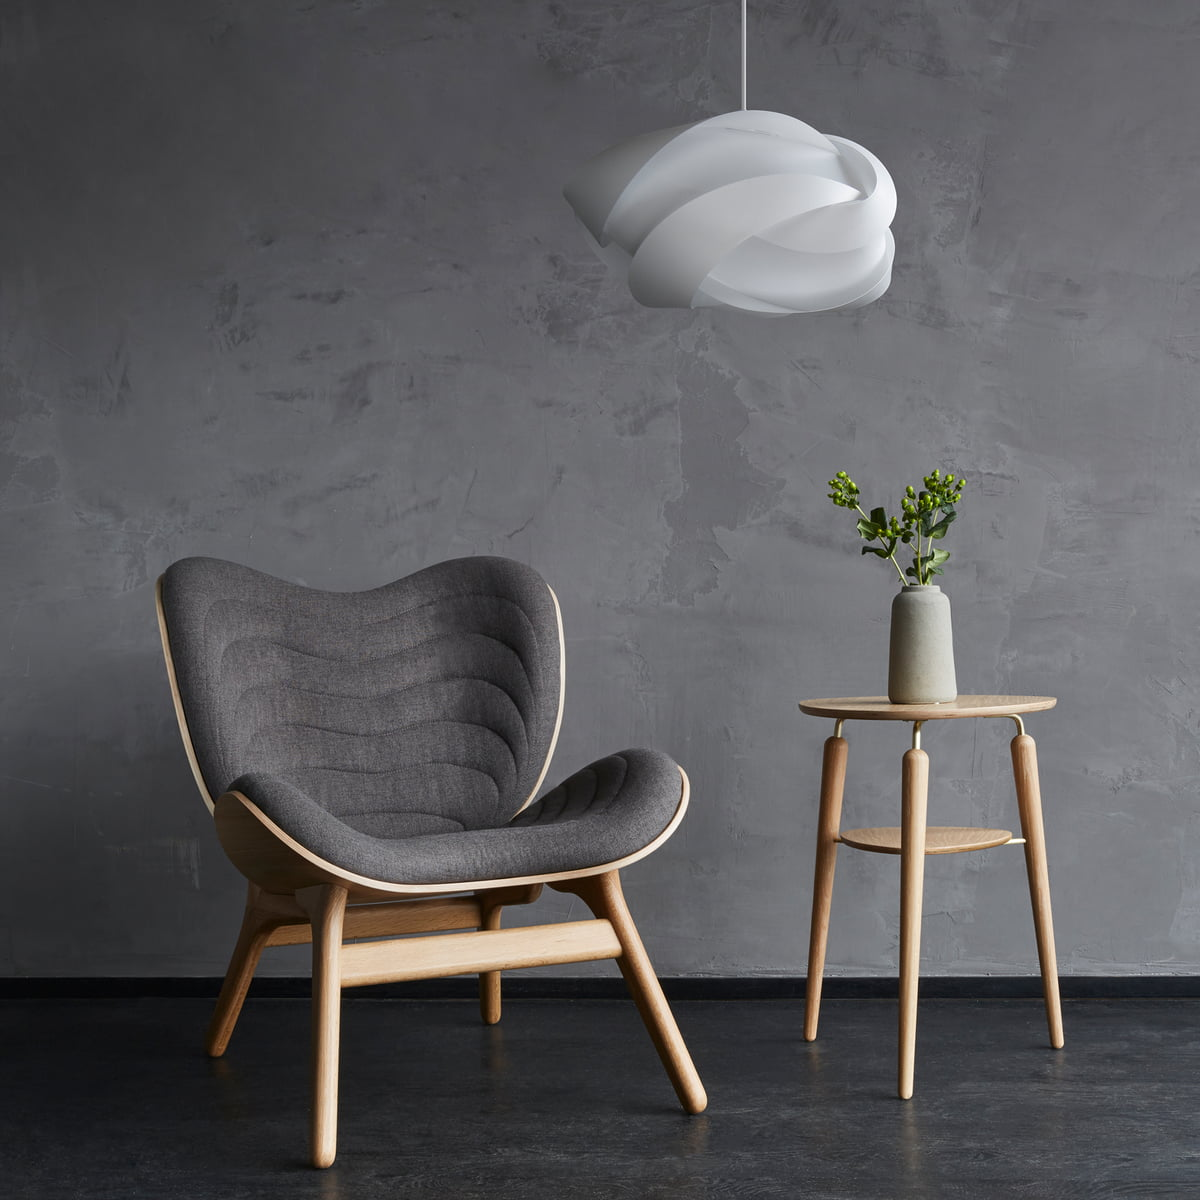 Ribbon lampshade by umage connox shop the umage ribbon pendant lamp with conversations armchair aloadofball